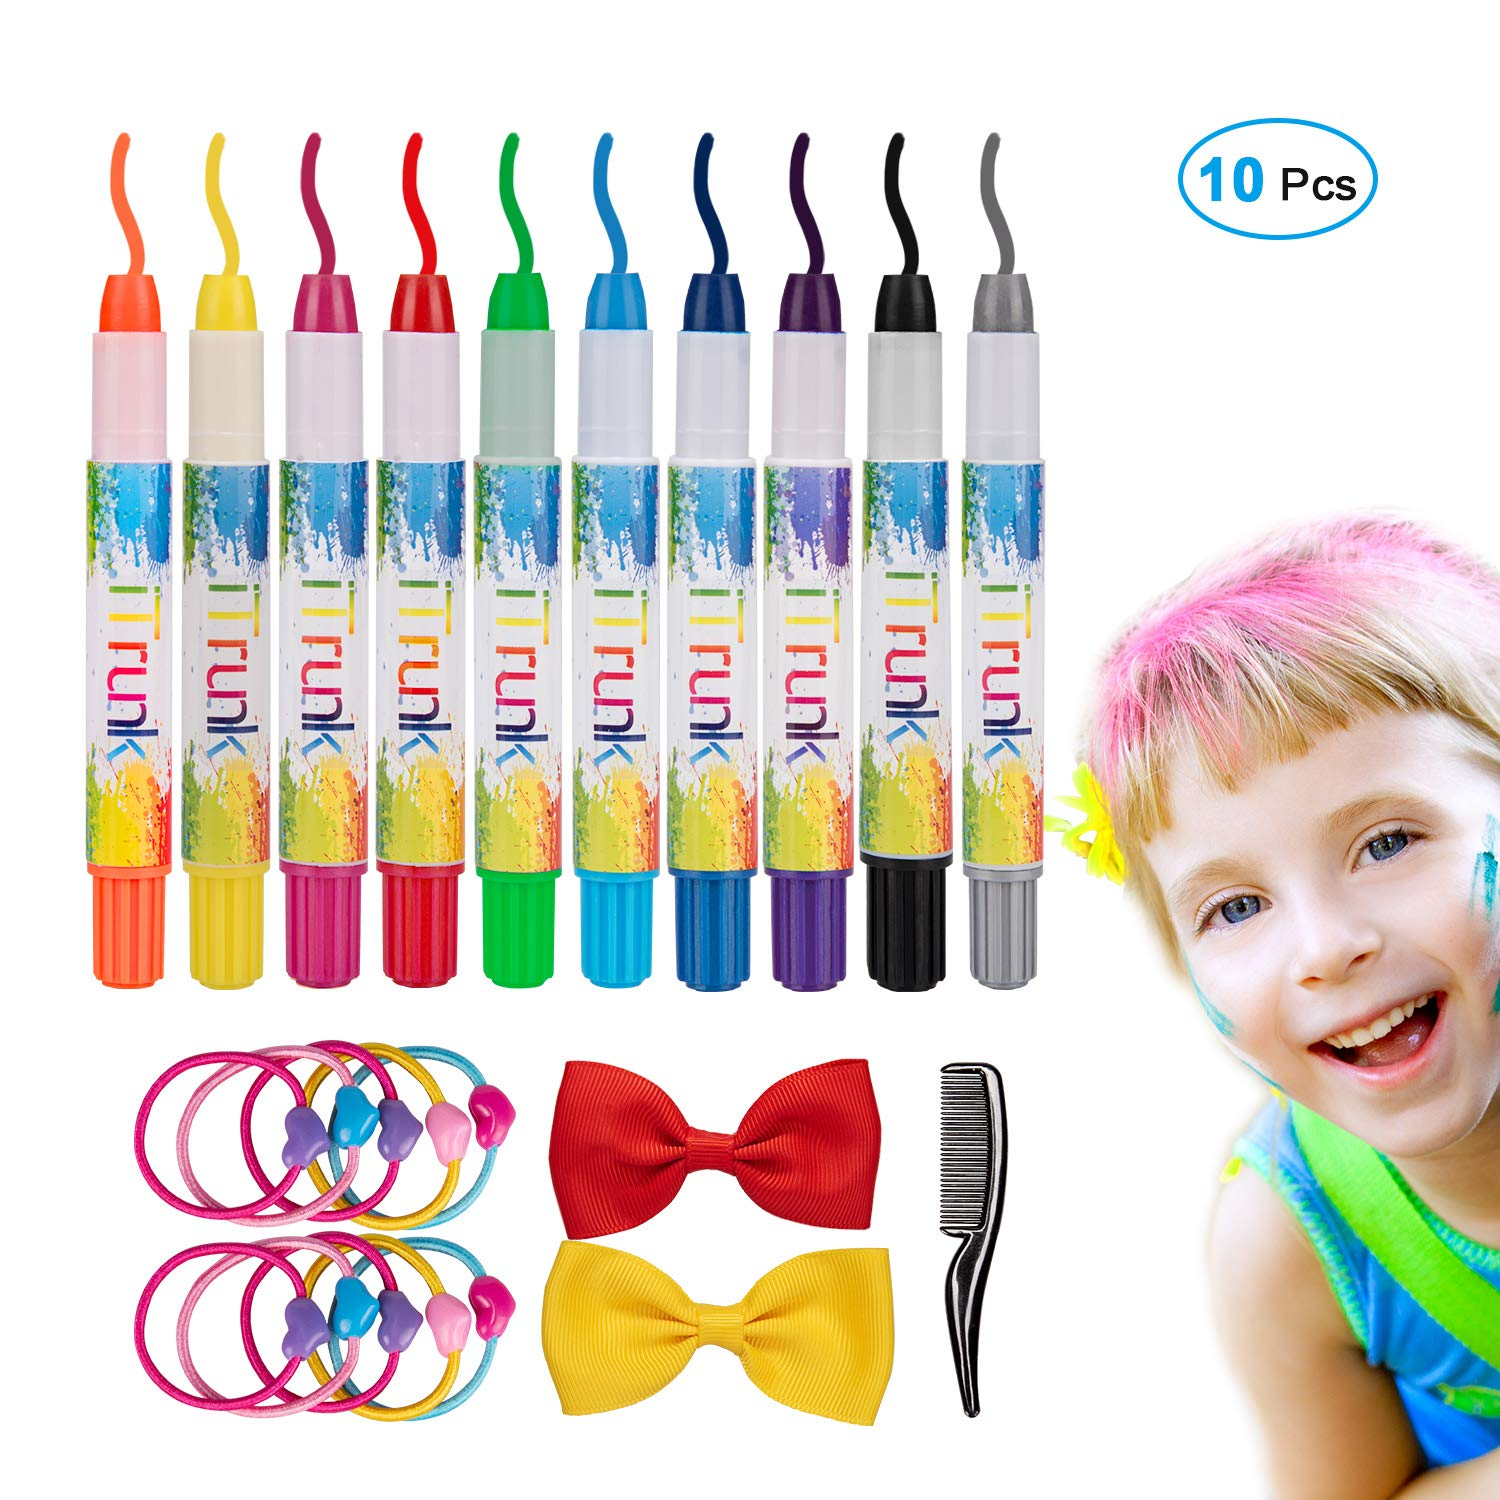 Hair Chalk, iTrunk 10 Colorful Non-Toxic Hair Chalk Pens and Face Paint Kit, Temporary Hair Color Chalk-Perfect Birthday Present Gifts for Girls Age 4-11 Years Old Fencos GE00100-FE-INFBA